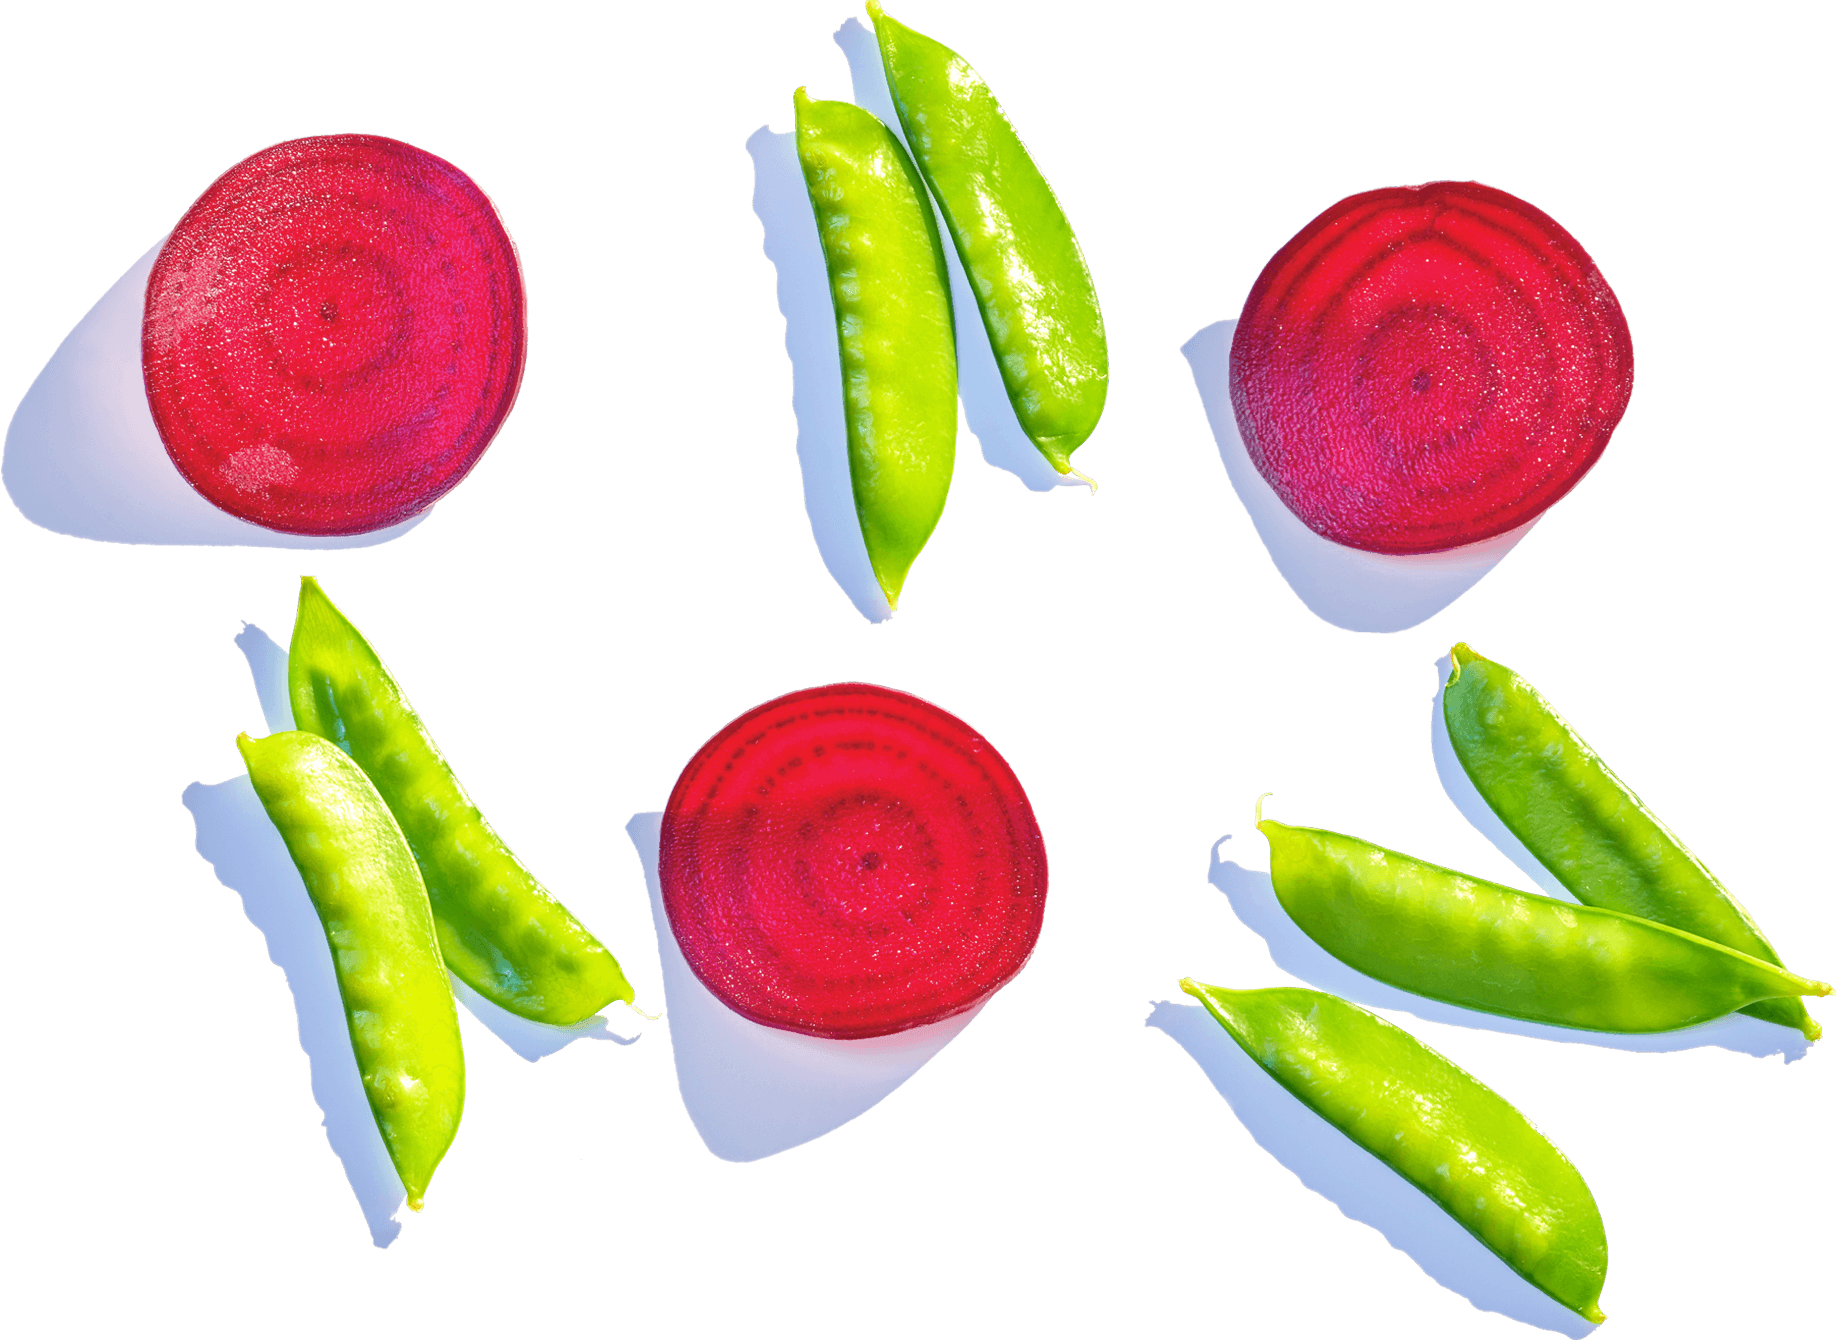 beet slices and edamame